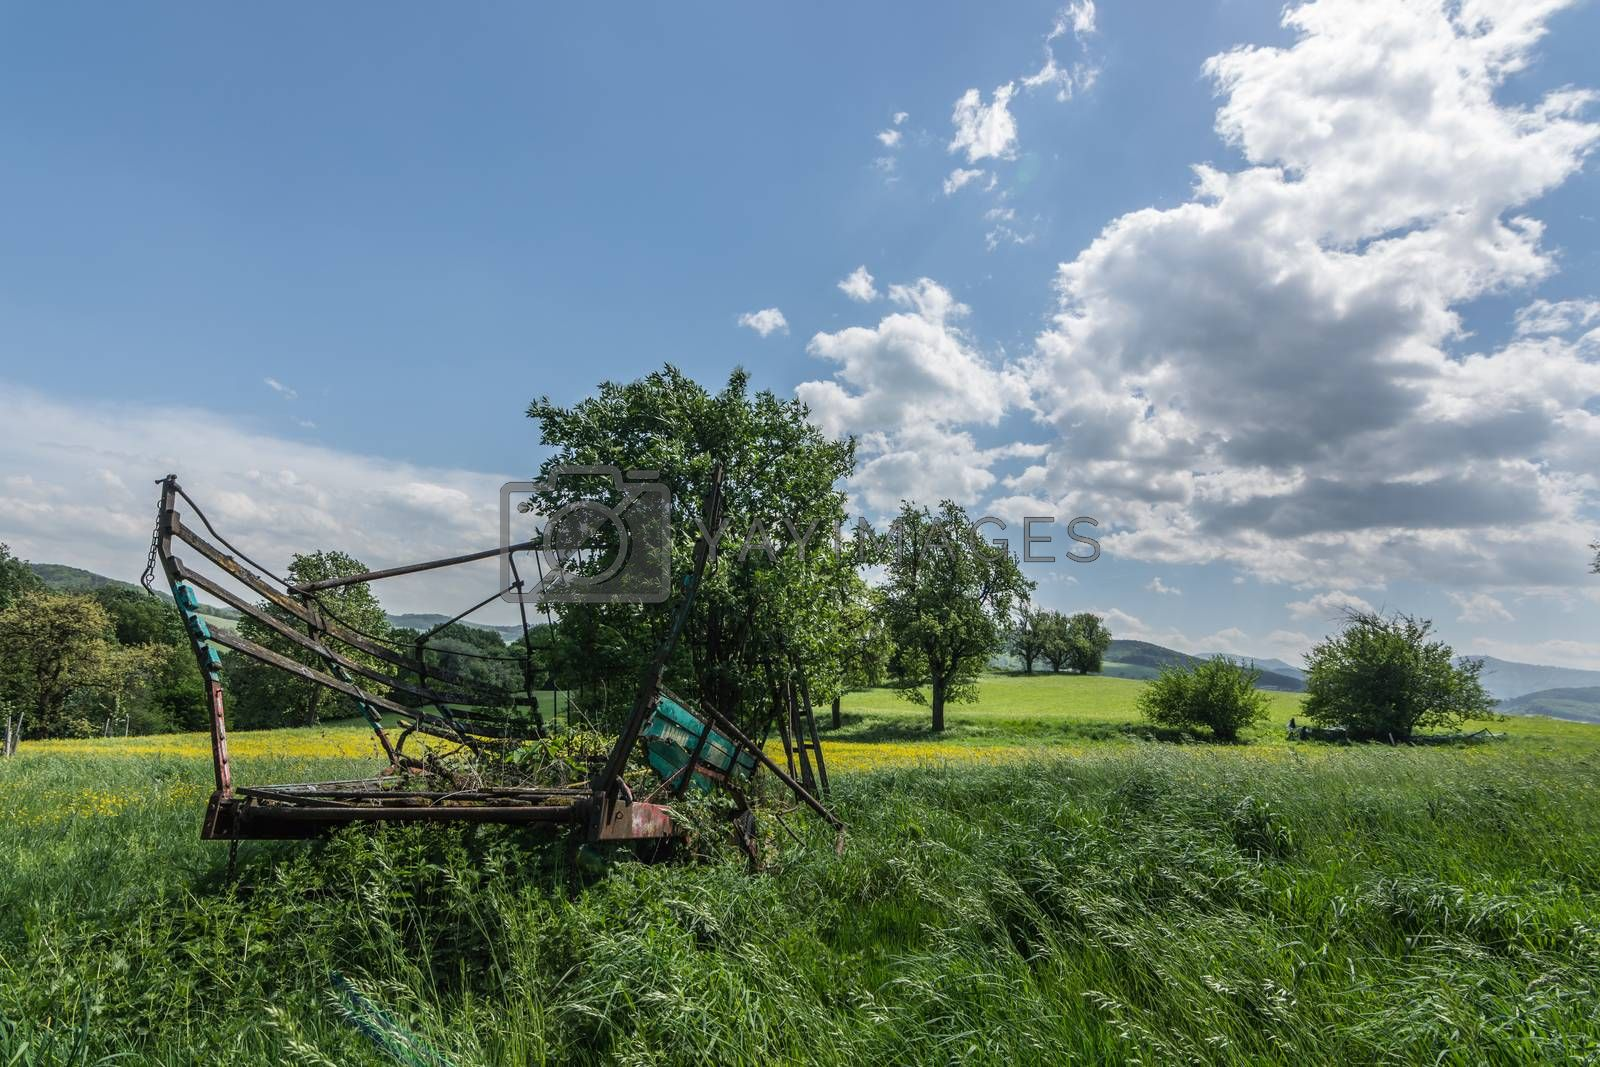 old wooden car in nature with sky and clouds